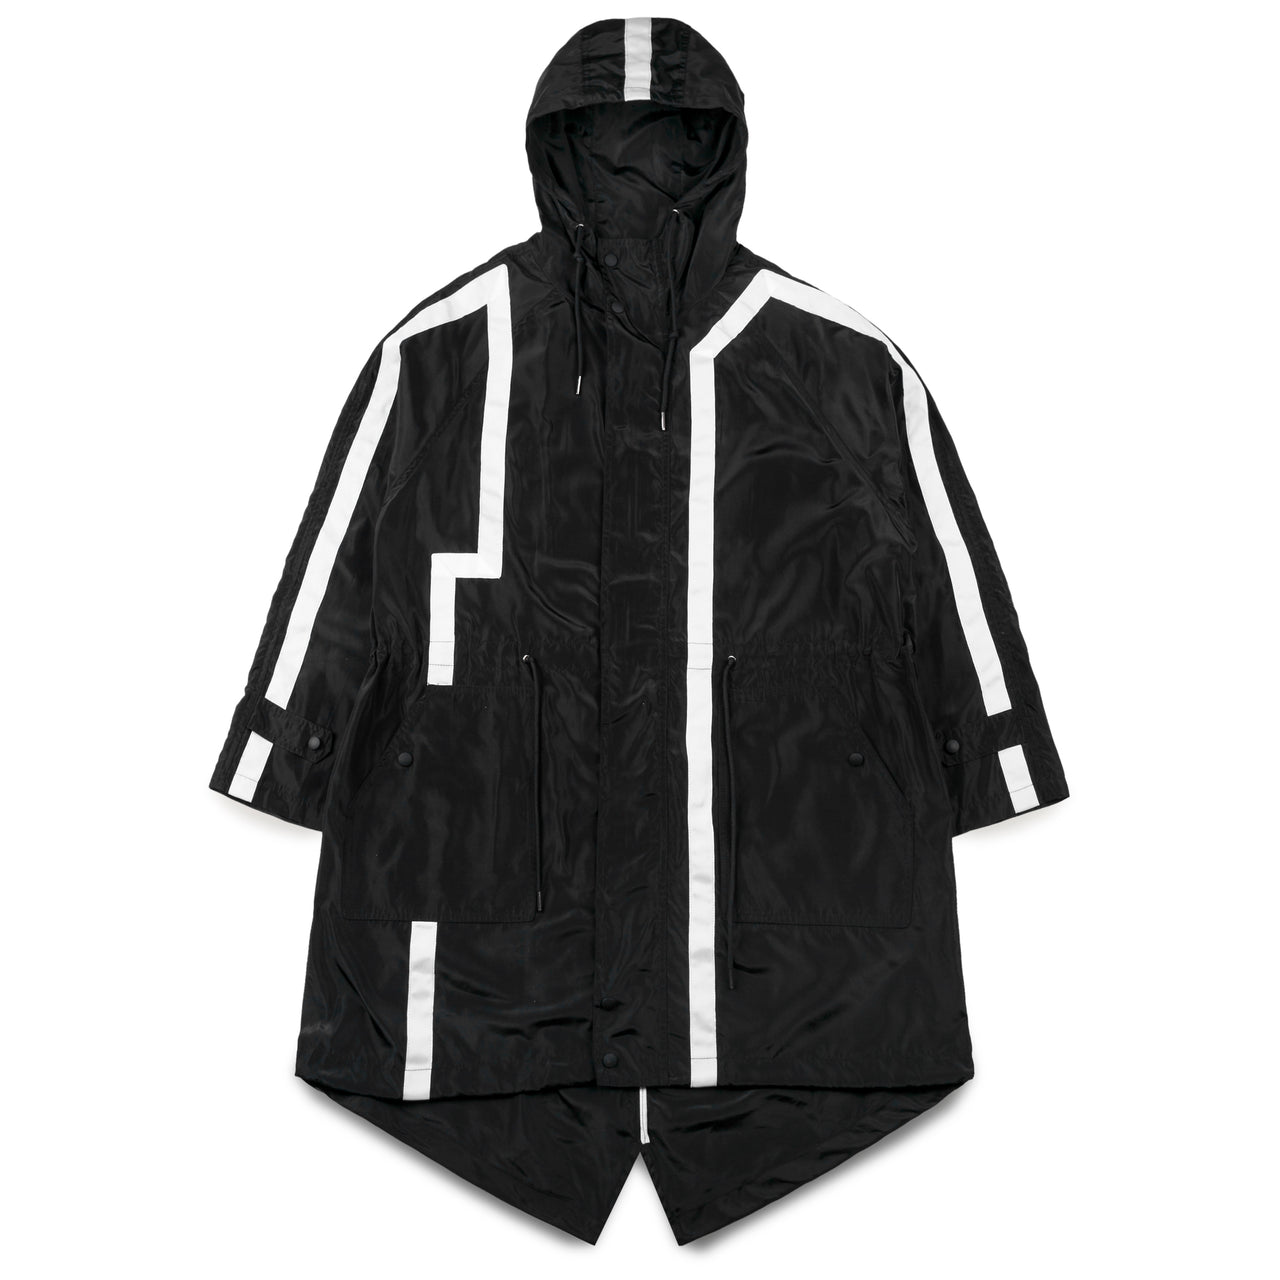 Jianfute Long Hooded Jacket with White Strap